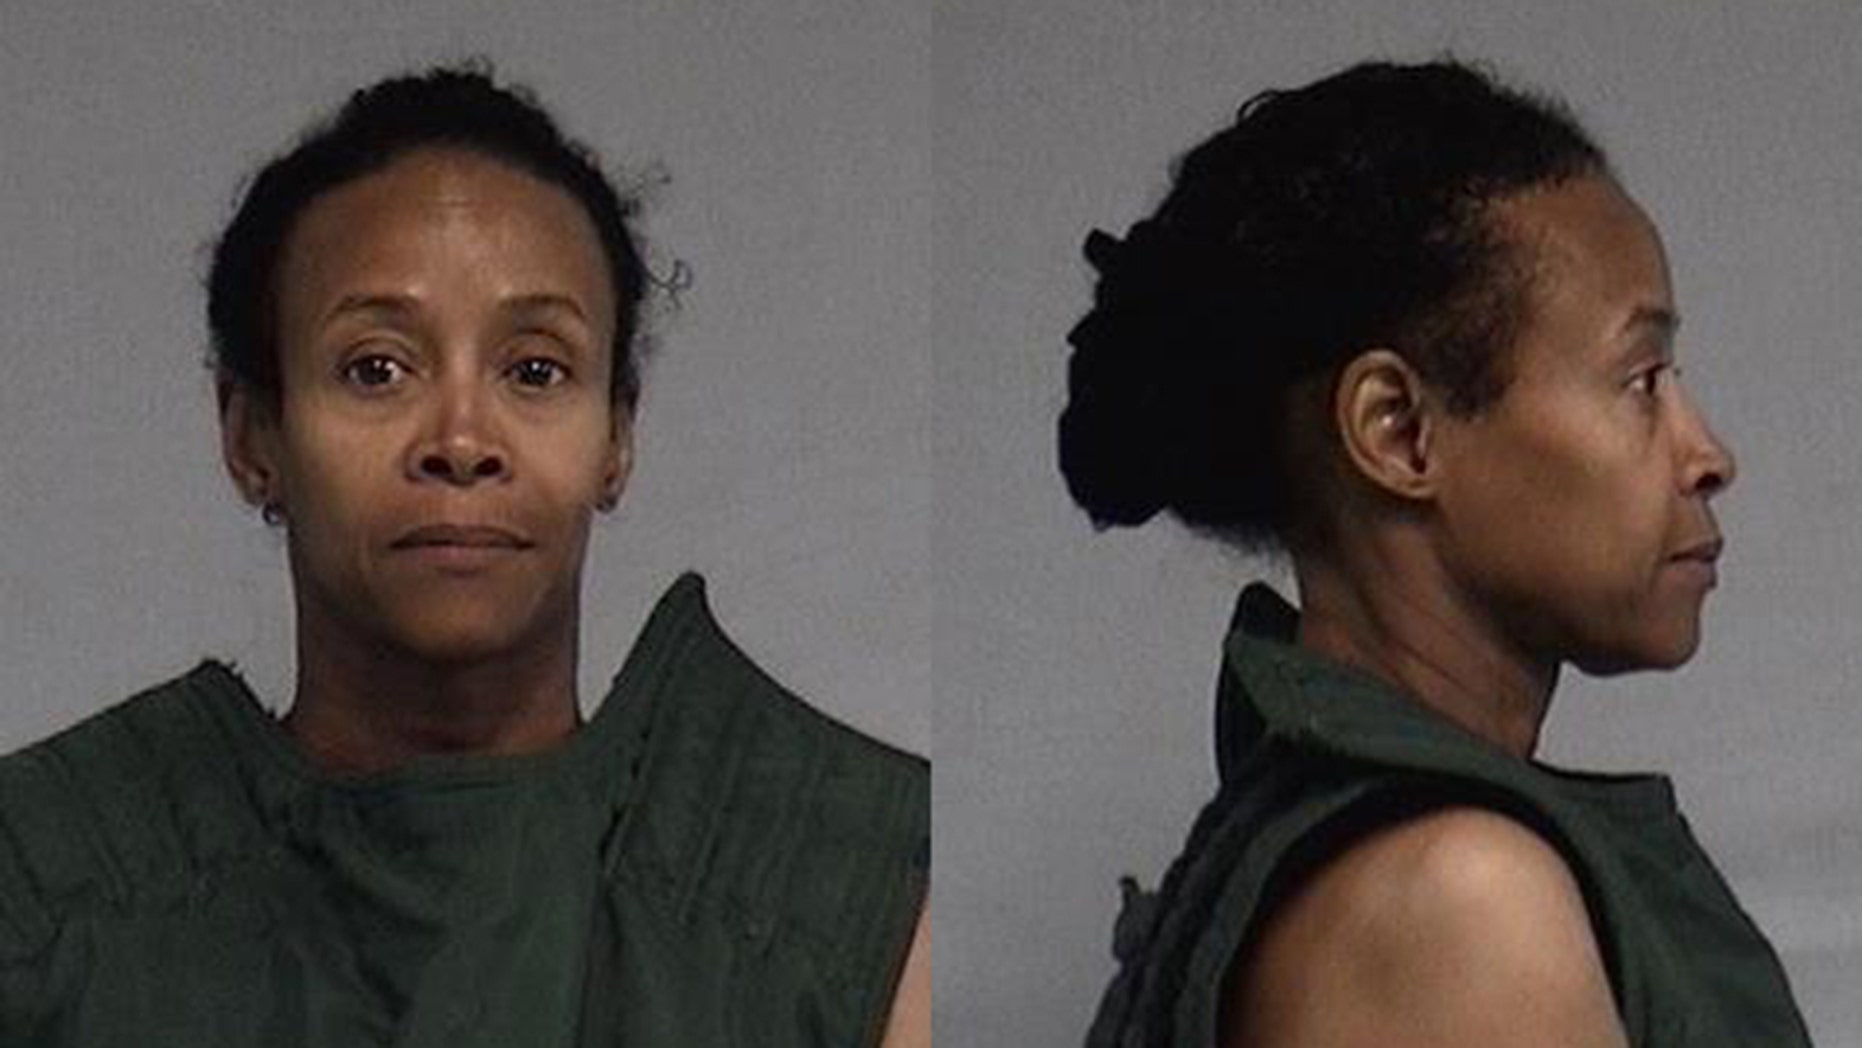 Lawanda Brown, 57, was arrested for attempted murder, the sheriff's office said.